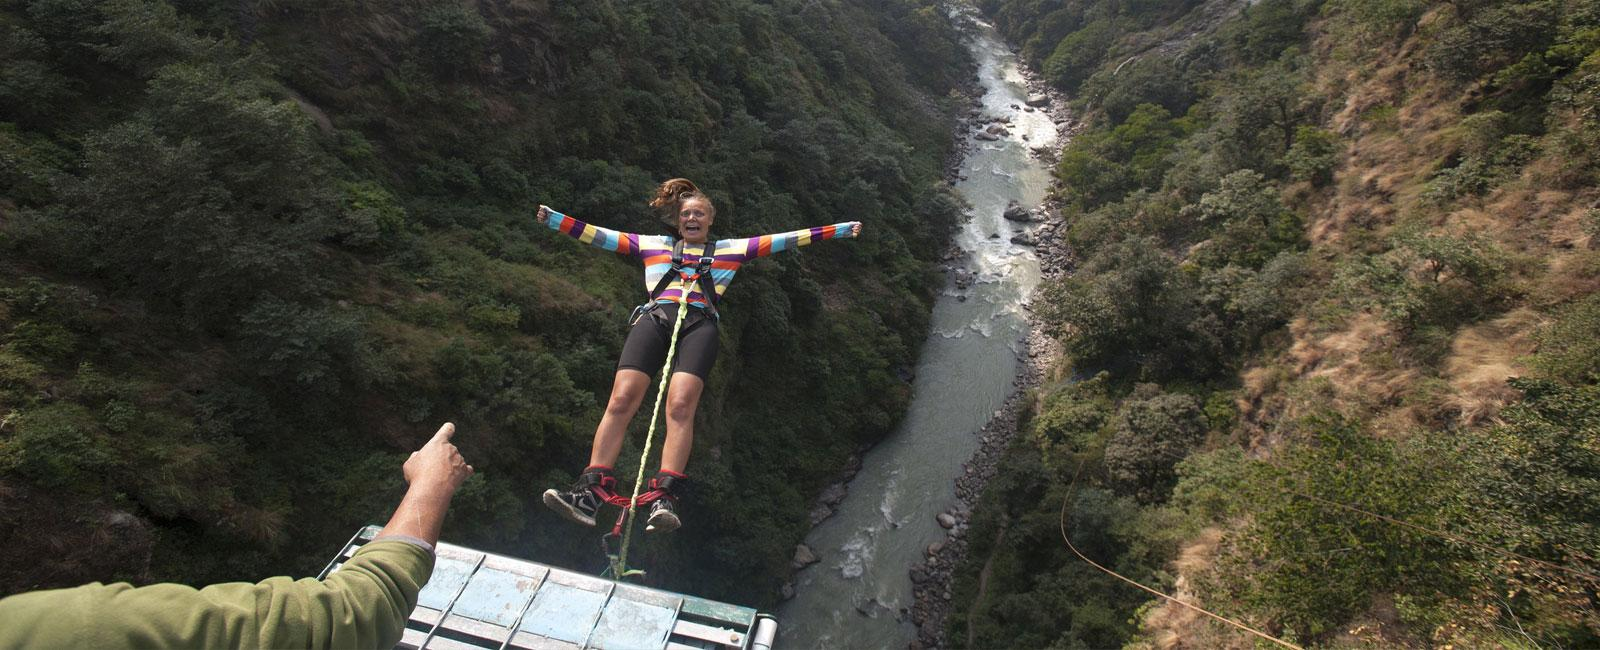 Day Bungee Jumping